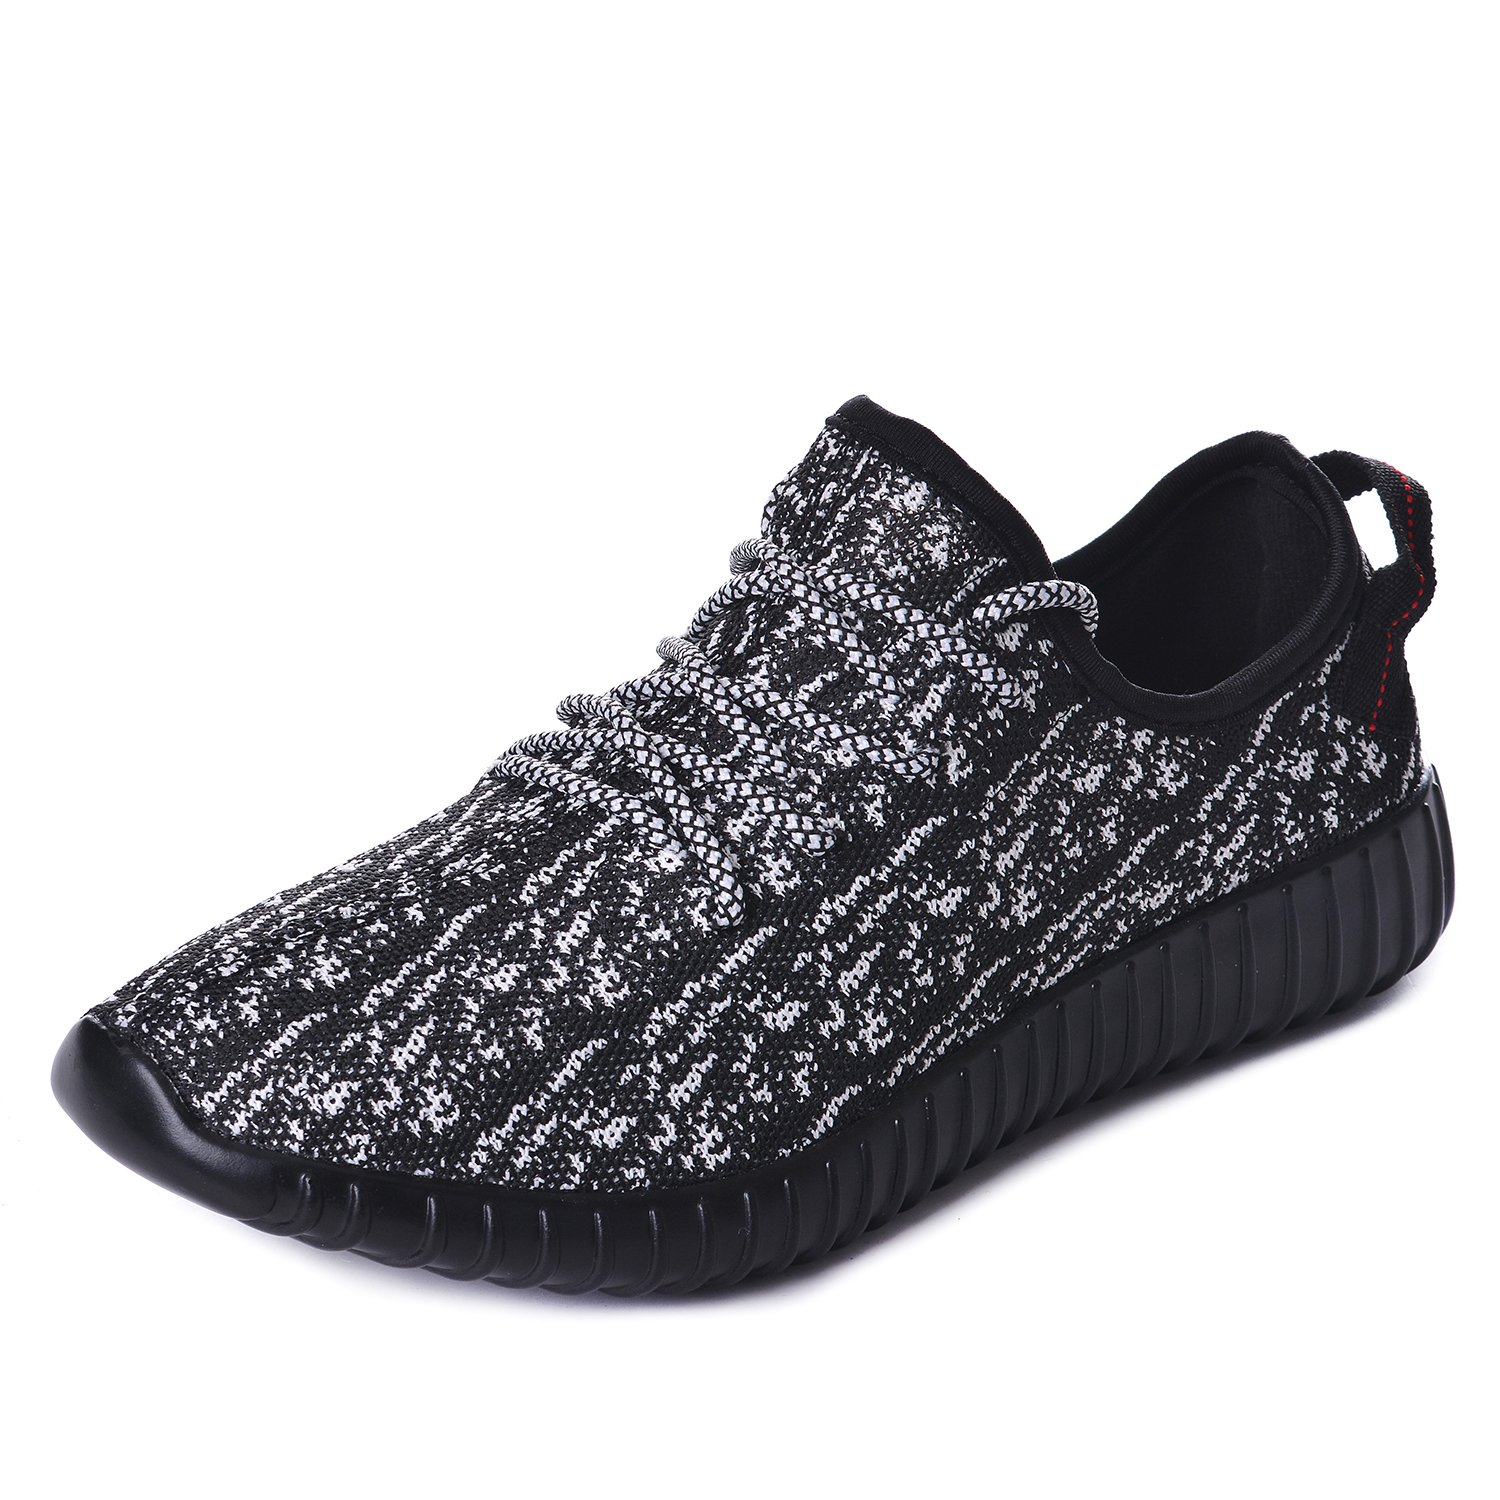 UOREHM Mens Running Shoes Lightweight Sports Womens Fashion Sneakers Breathable Casual Walking Athletic Blackwhite 44